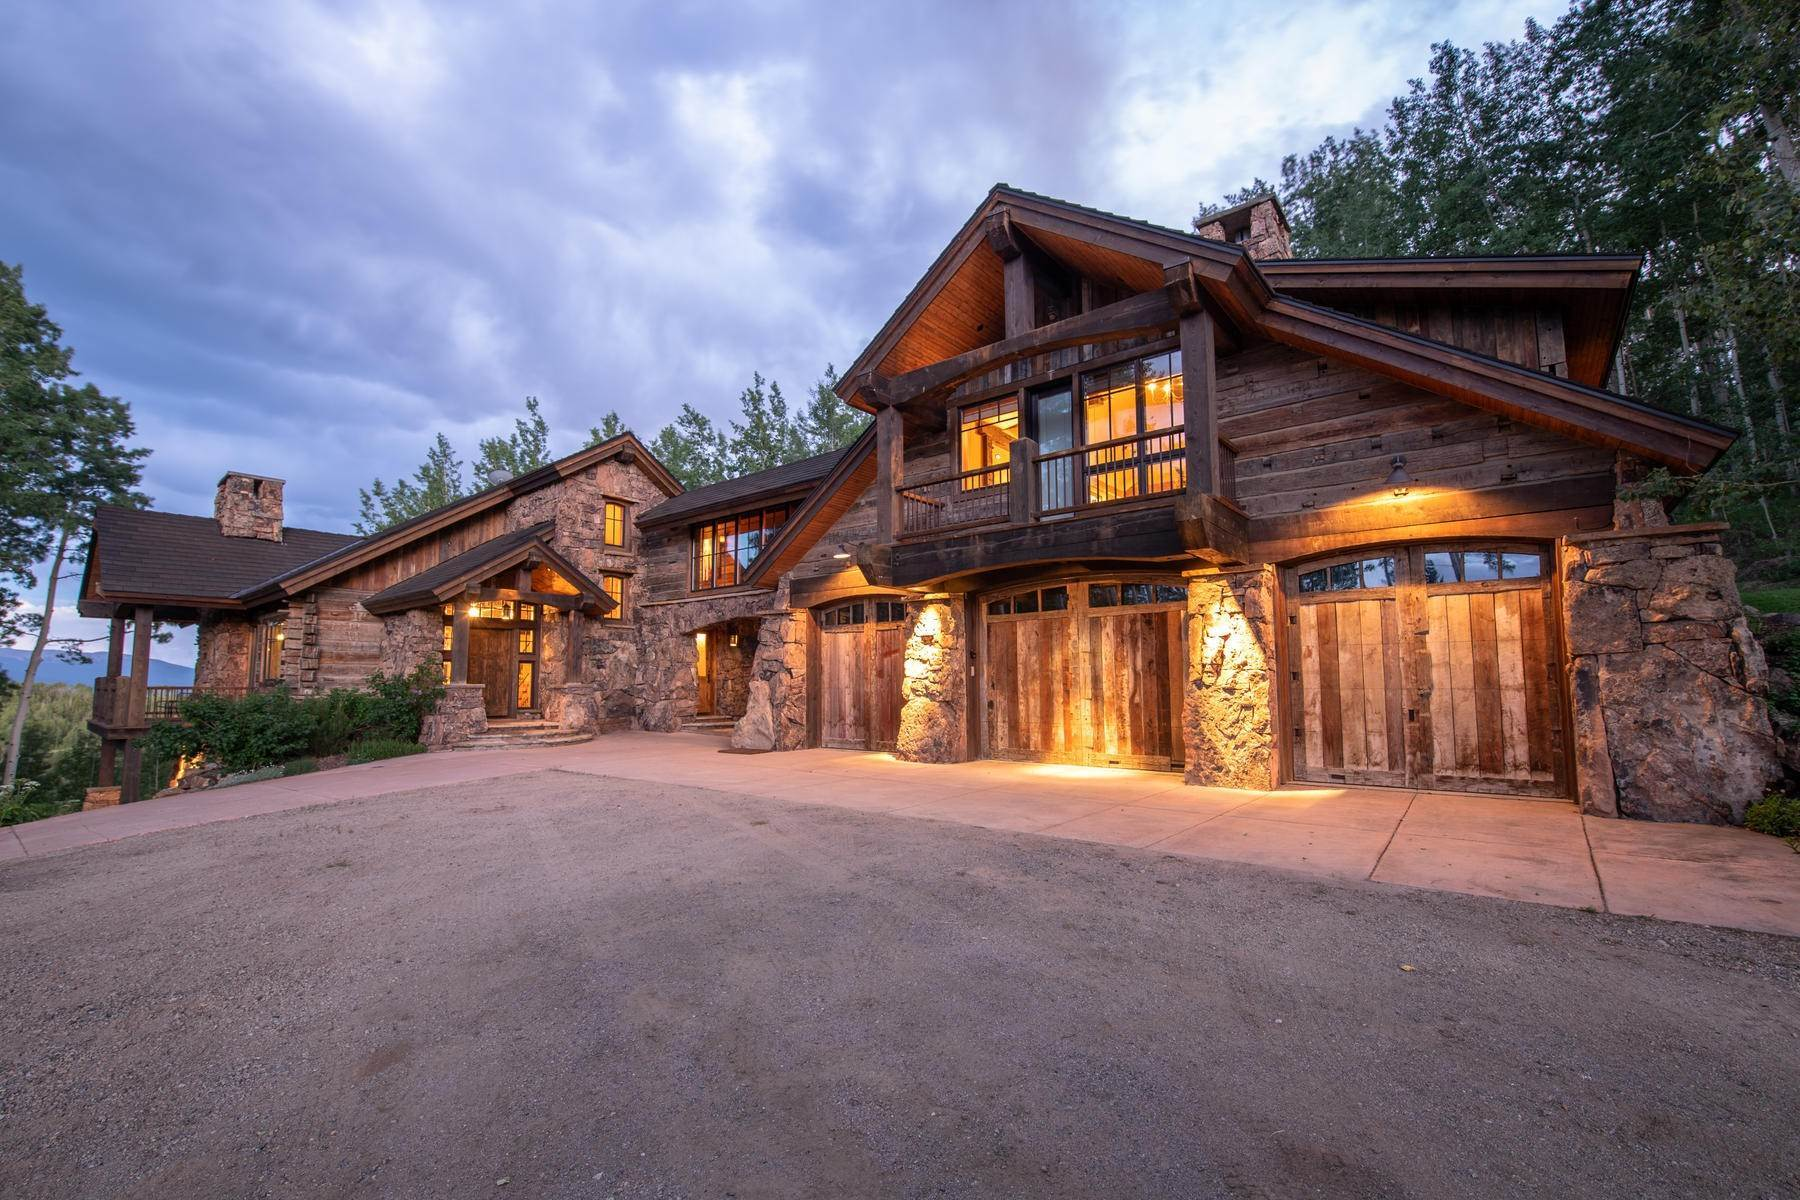 Single Family Homes for Sale at Breathtaking Home in Red Mountain Ranch 1515 Red Mountain Ranch Road Crested Butte, Colorado 81224 United States